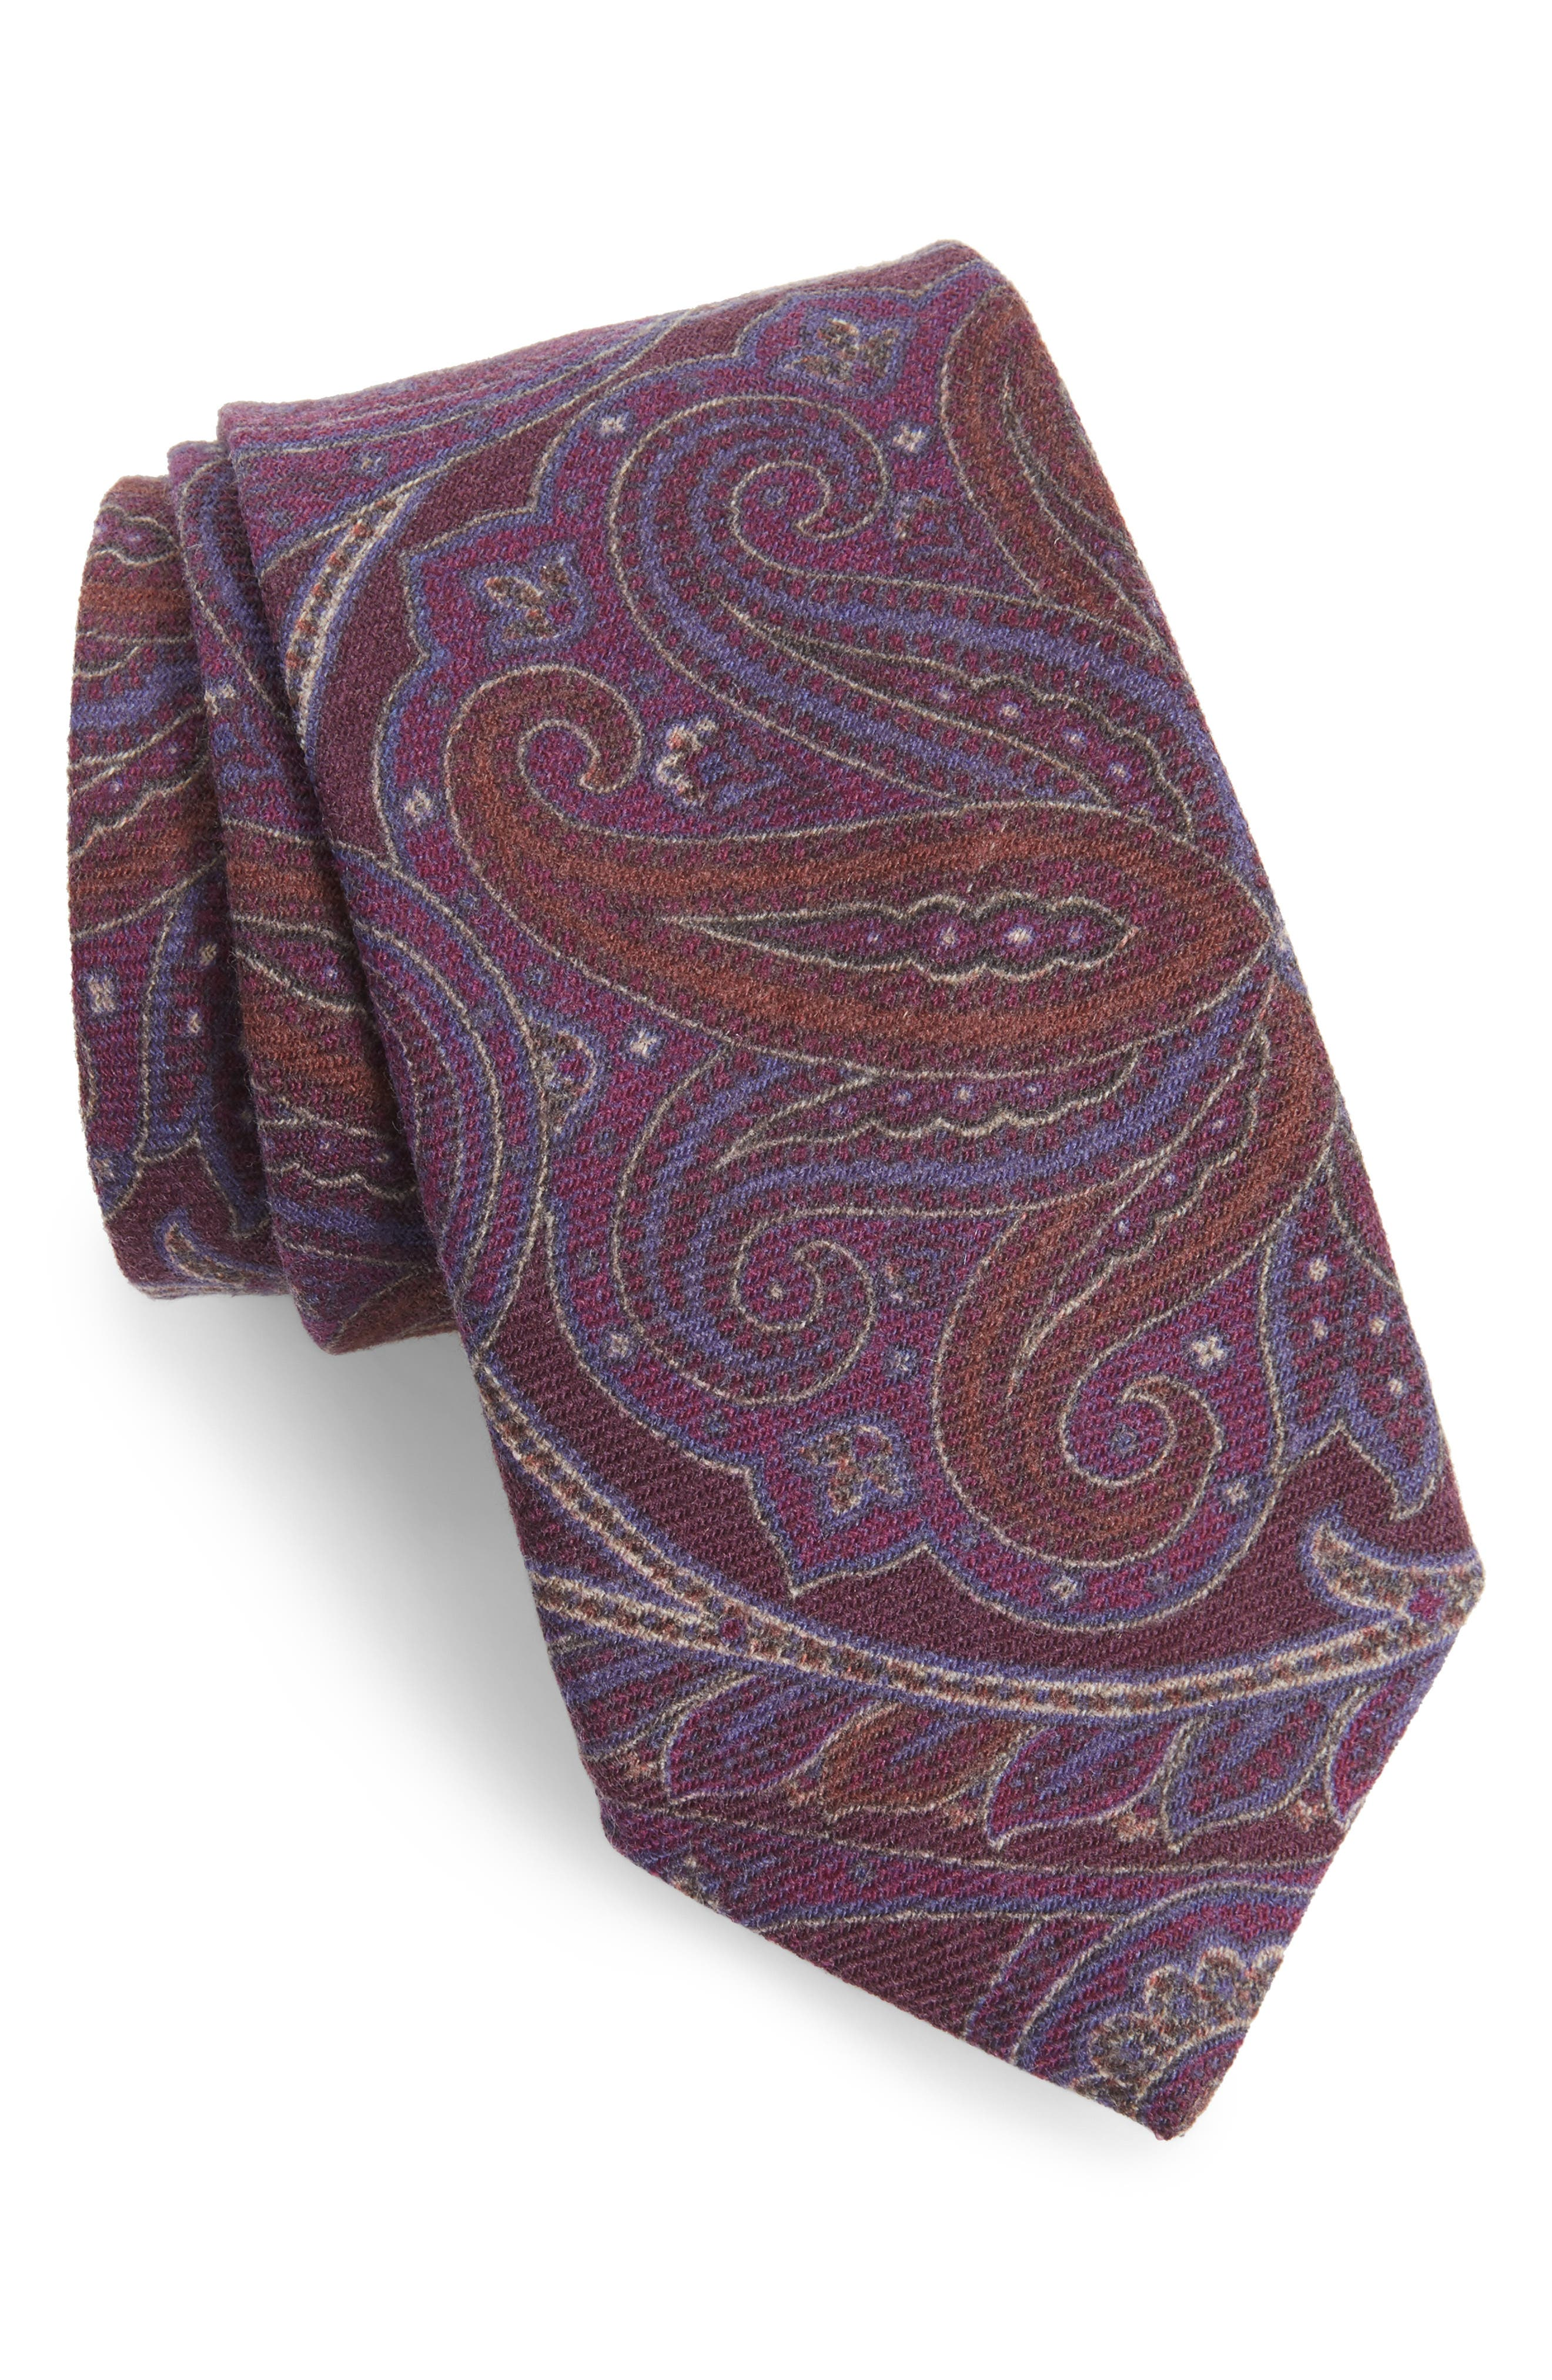 Alternate Image 1 Selected - Michael Bastian Paisley Wool Tie